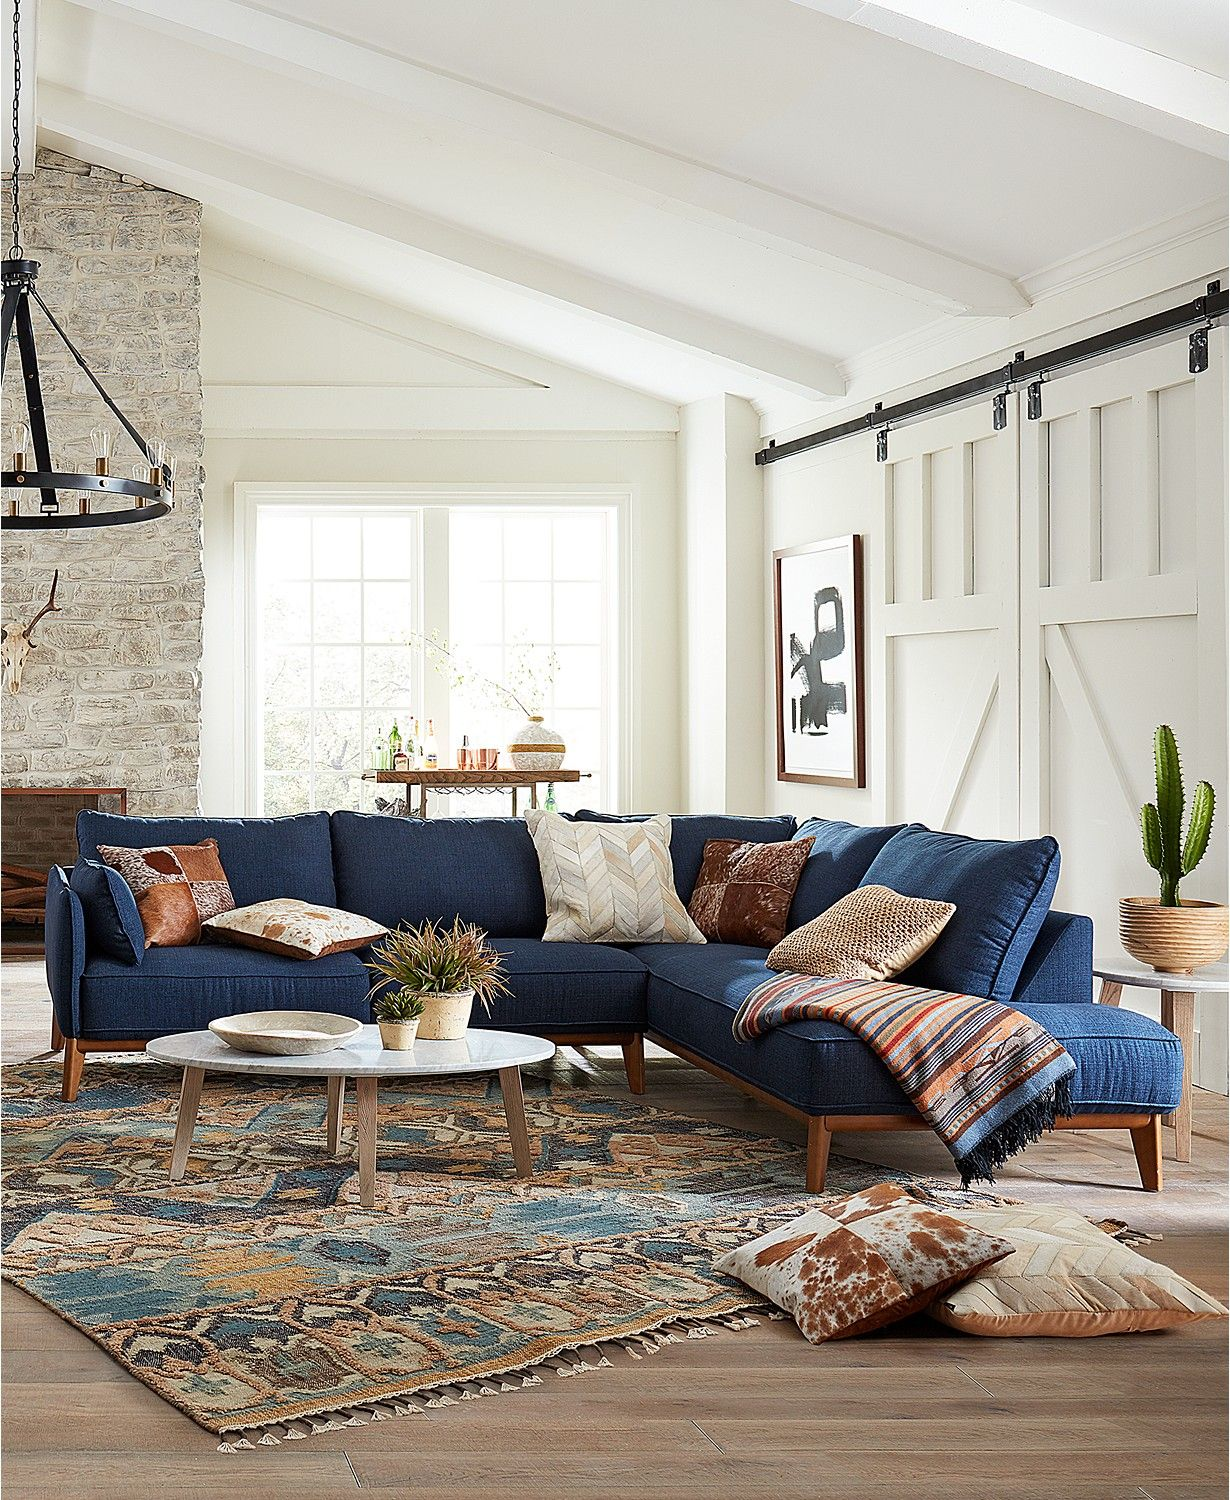 Furniture Jollene Fabric Sectional And Sofa Collection Created For Macy S Reviews Furniture Macy S Blue Sofas Living Room Blue Couch Living Room Mid Century Modern Living Room